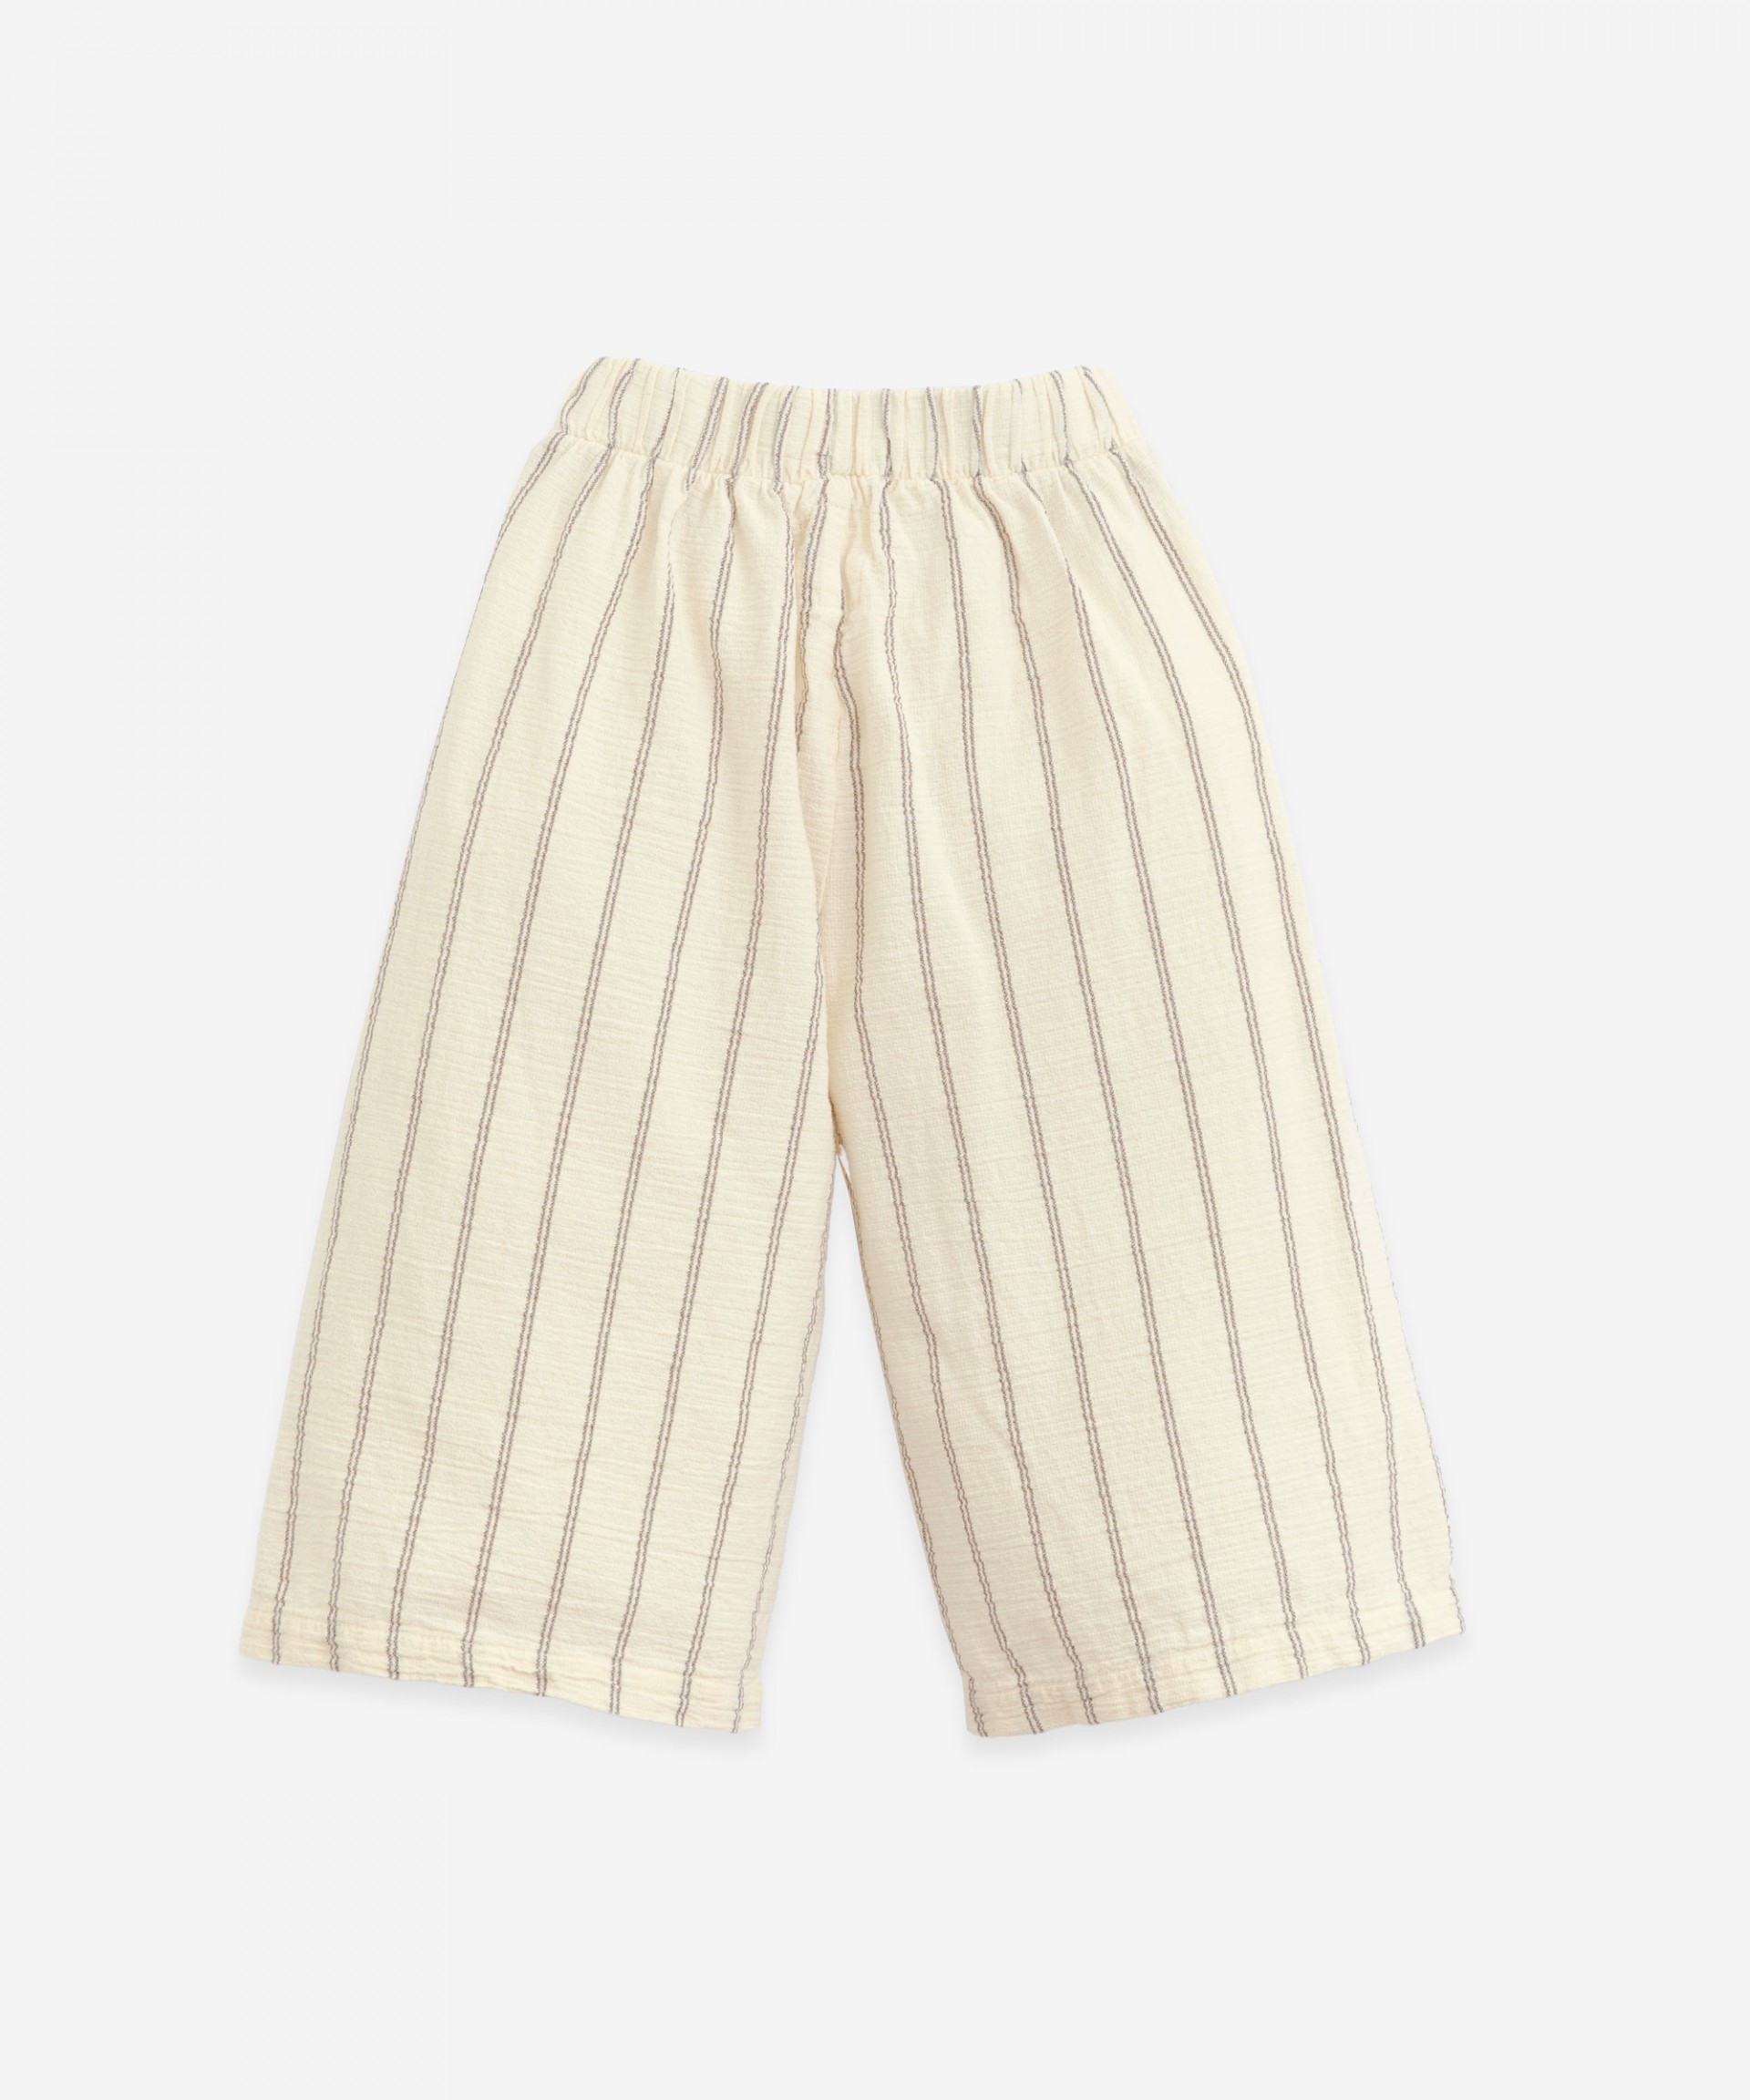 Striped trousers | Botany